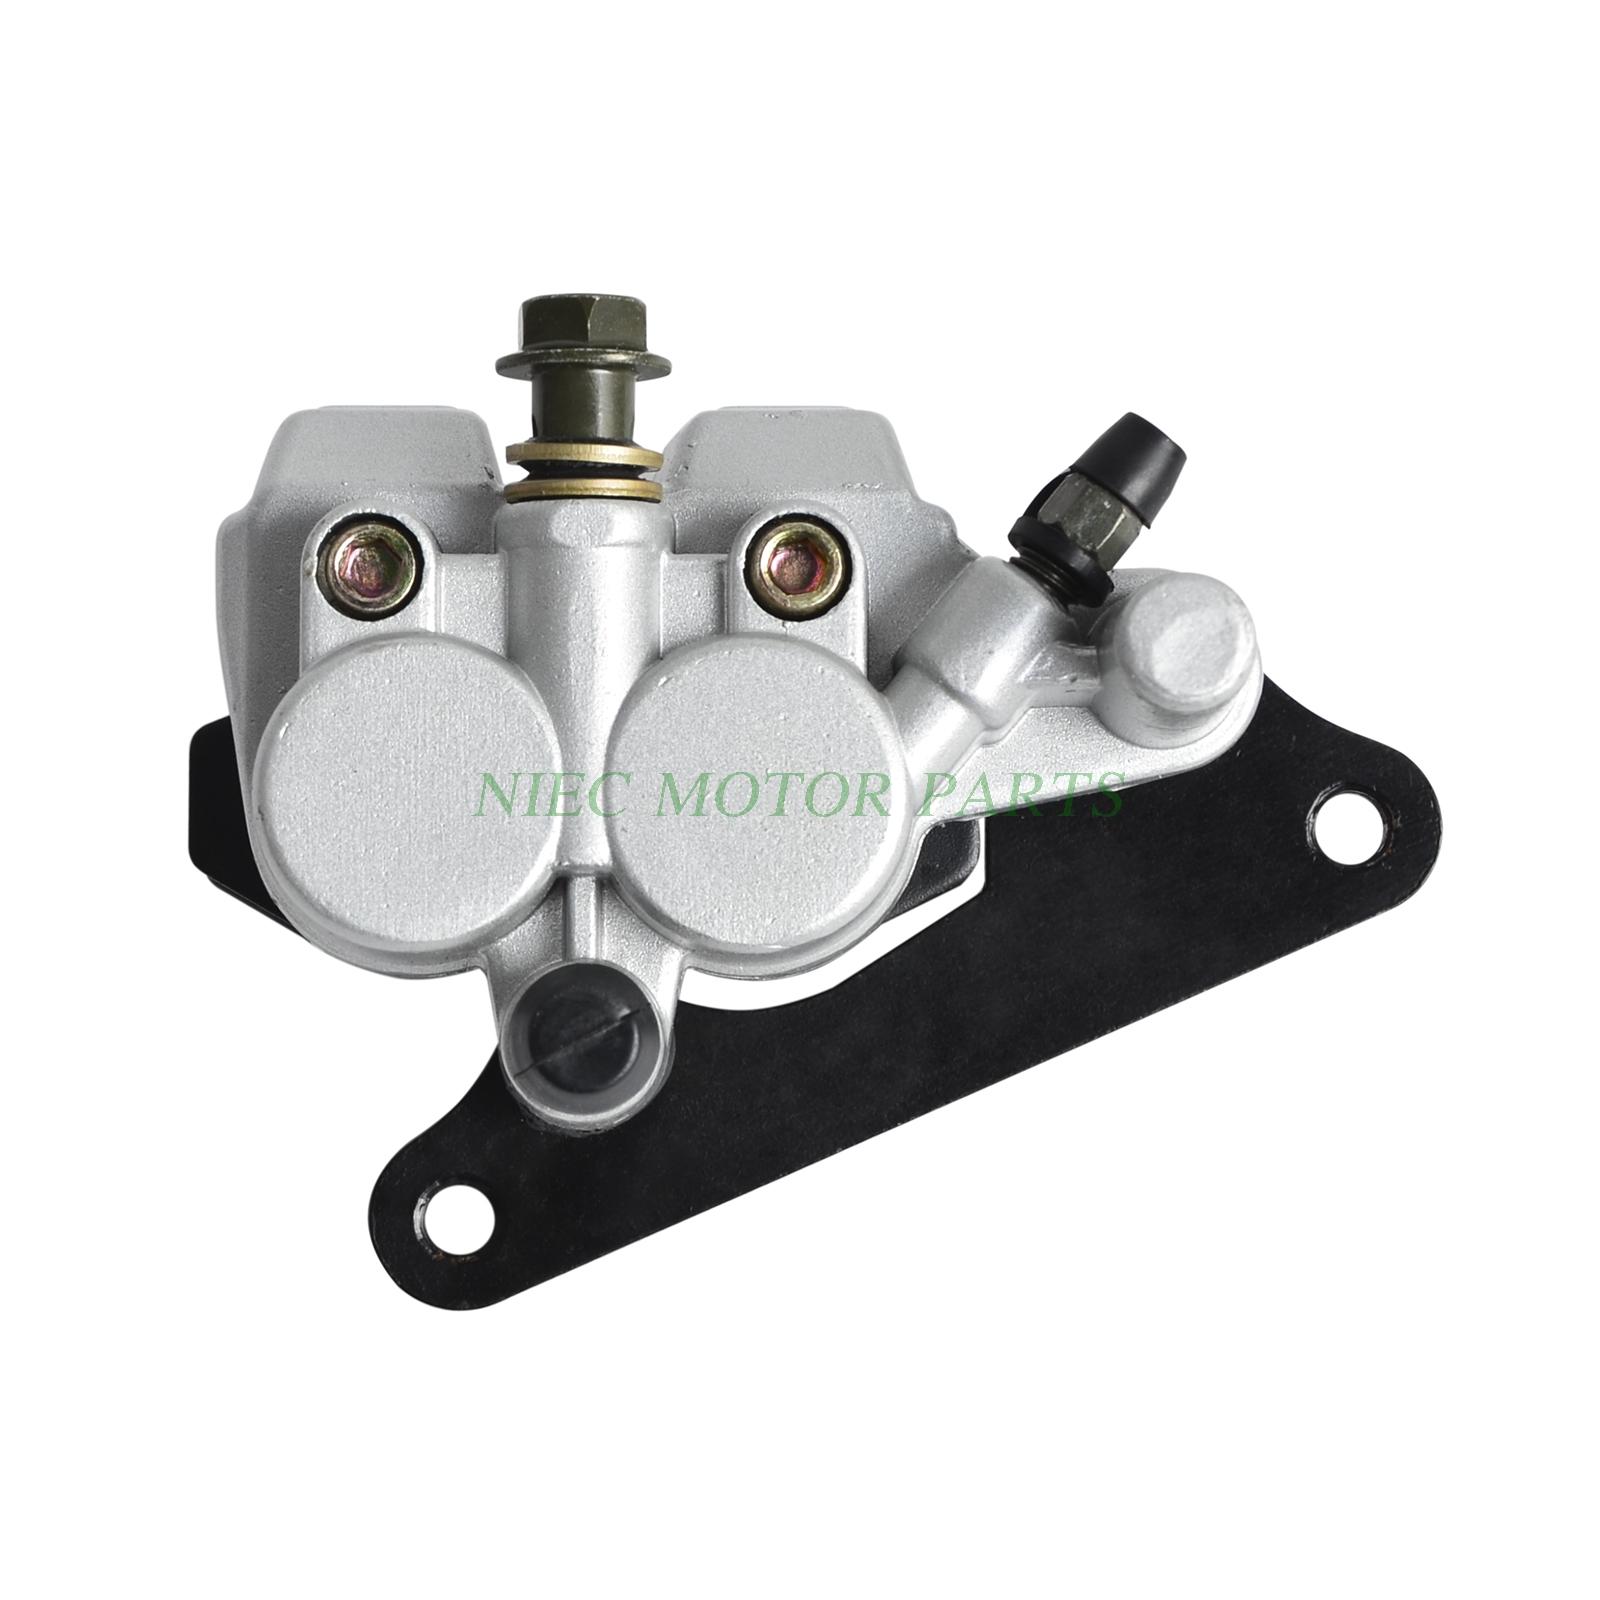 ФОТО Rear Brake Caliper for Chinese 200cc 250cc Go Kart ATV Scooters GY6